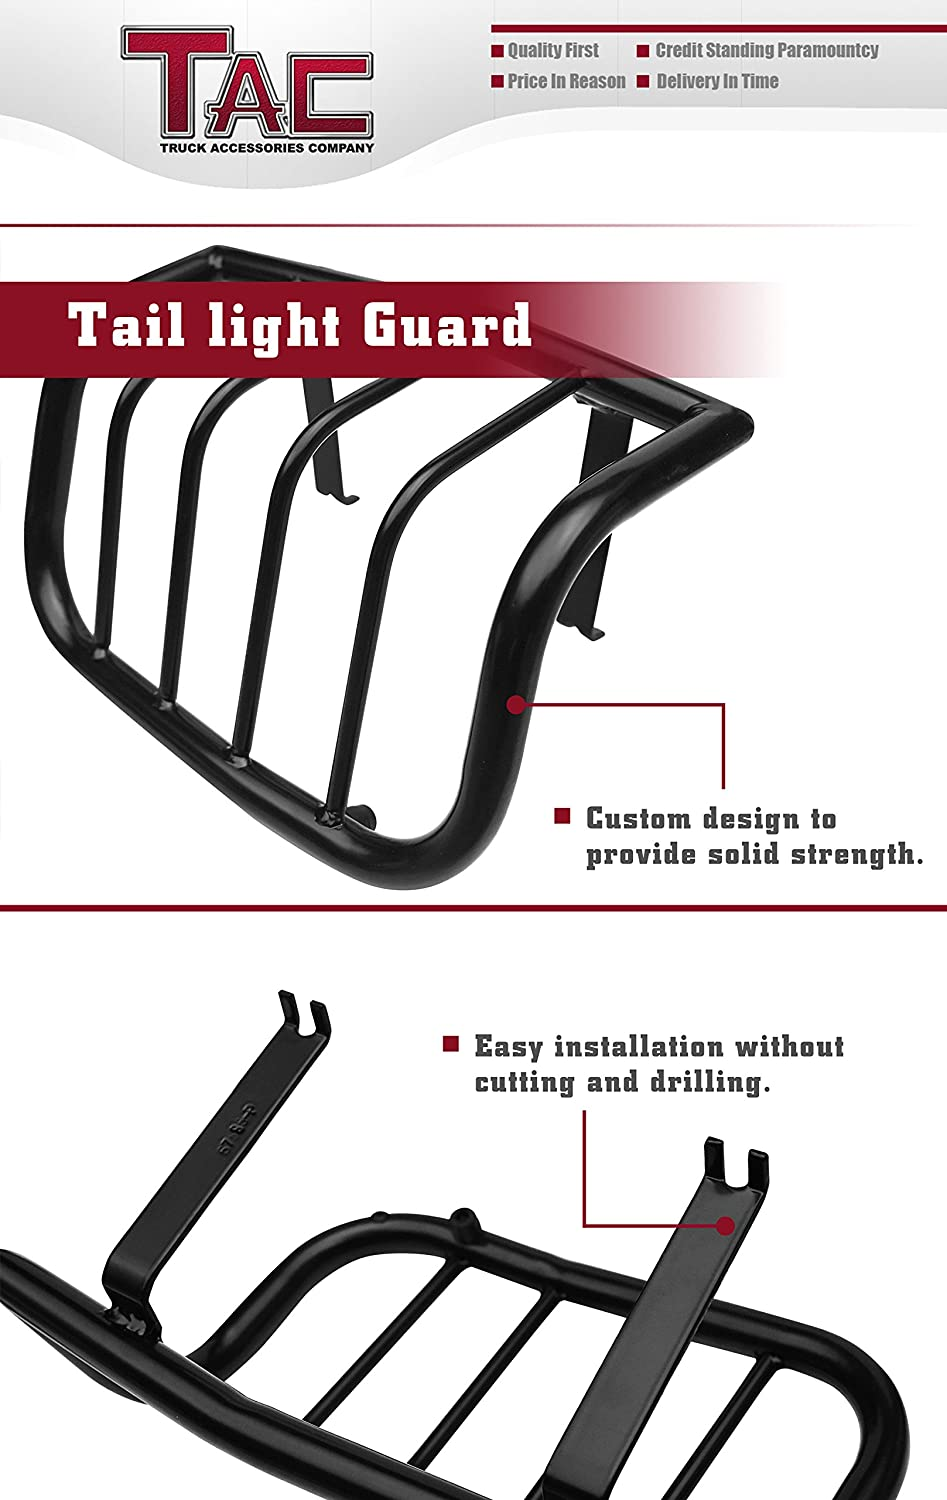 1 Pair TAC Rear Tail Light Guards Cover Protector Fit 1996-2002 Toyota 4Runner TLG BLACK Taillight